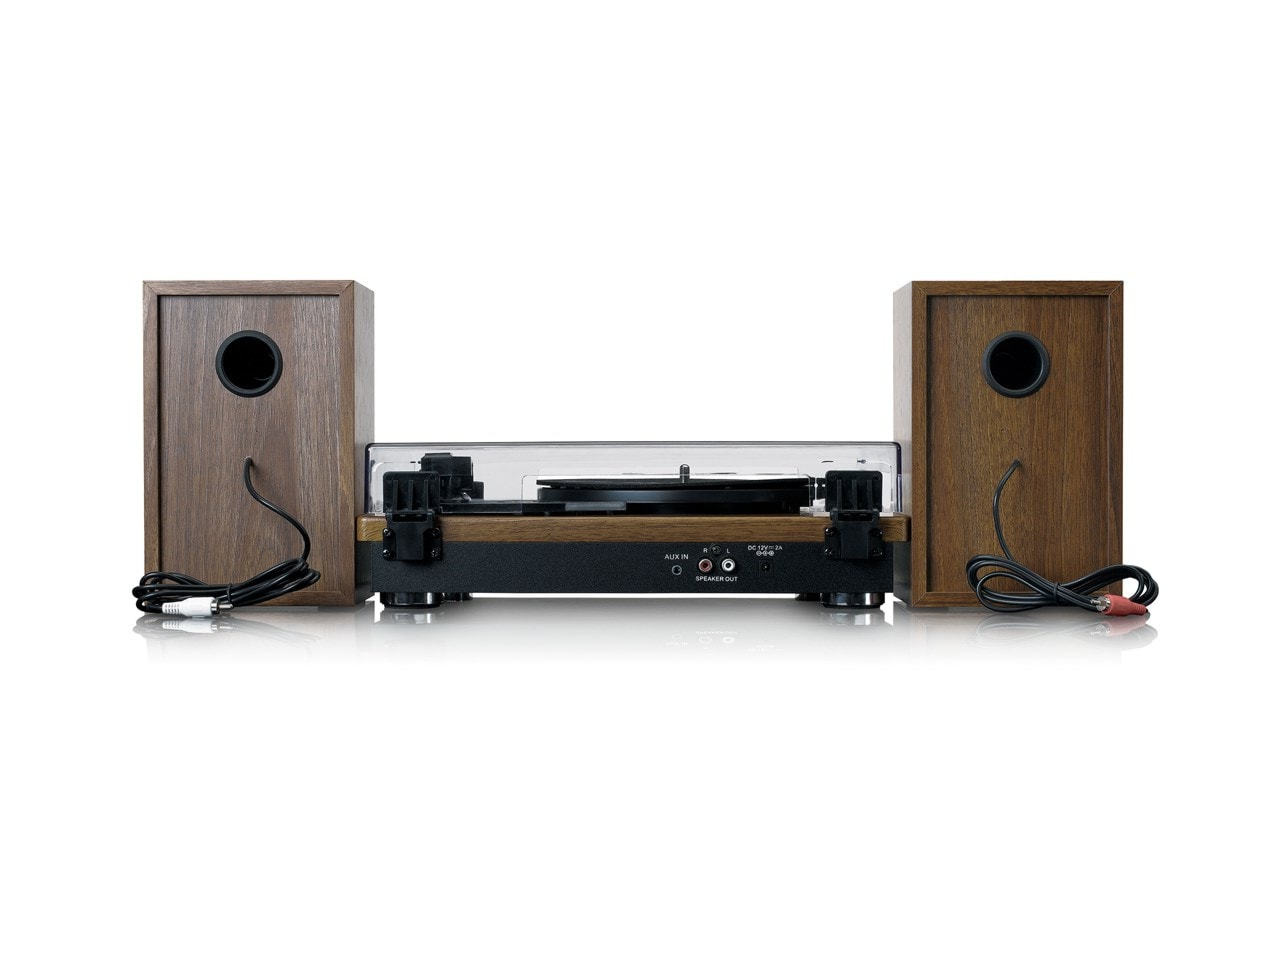 Lenco LS100 Wood Turntable & Speakers - 2